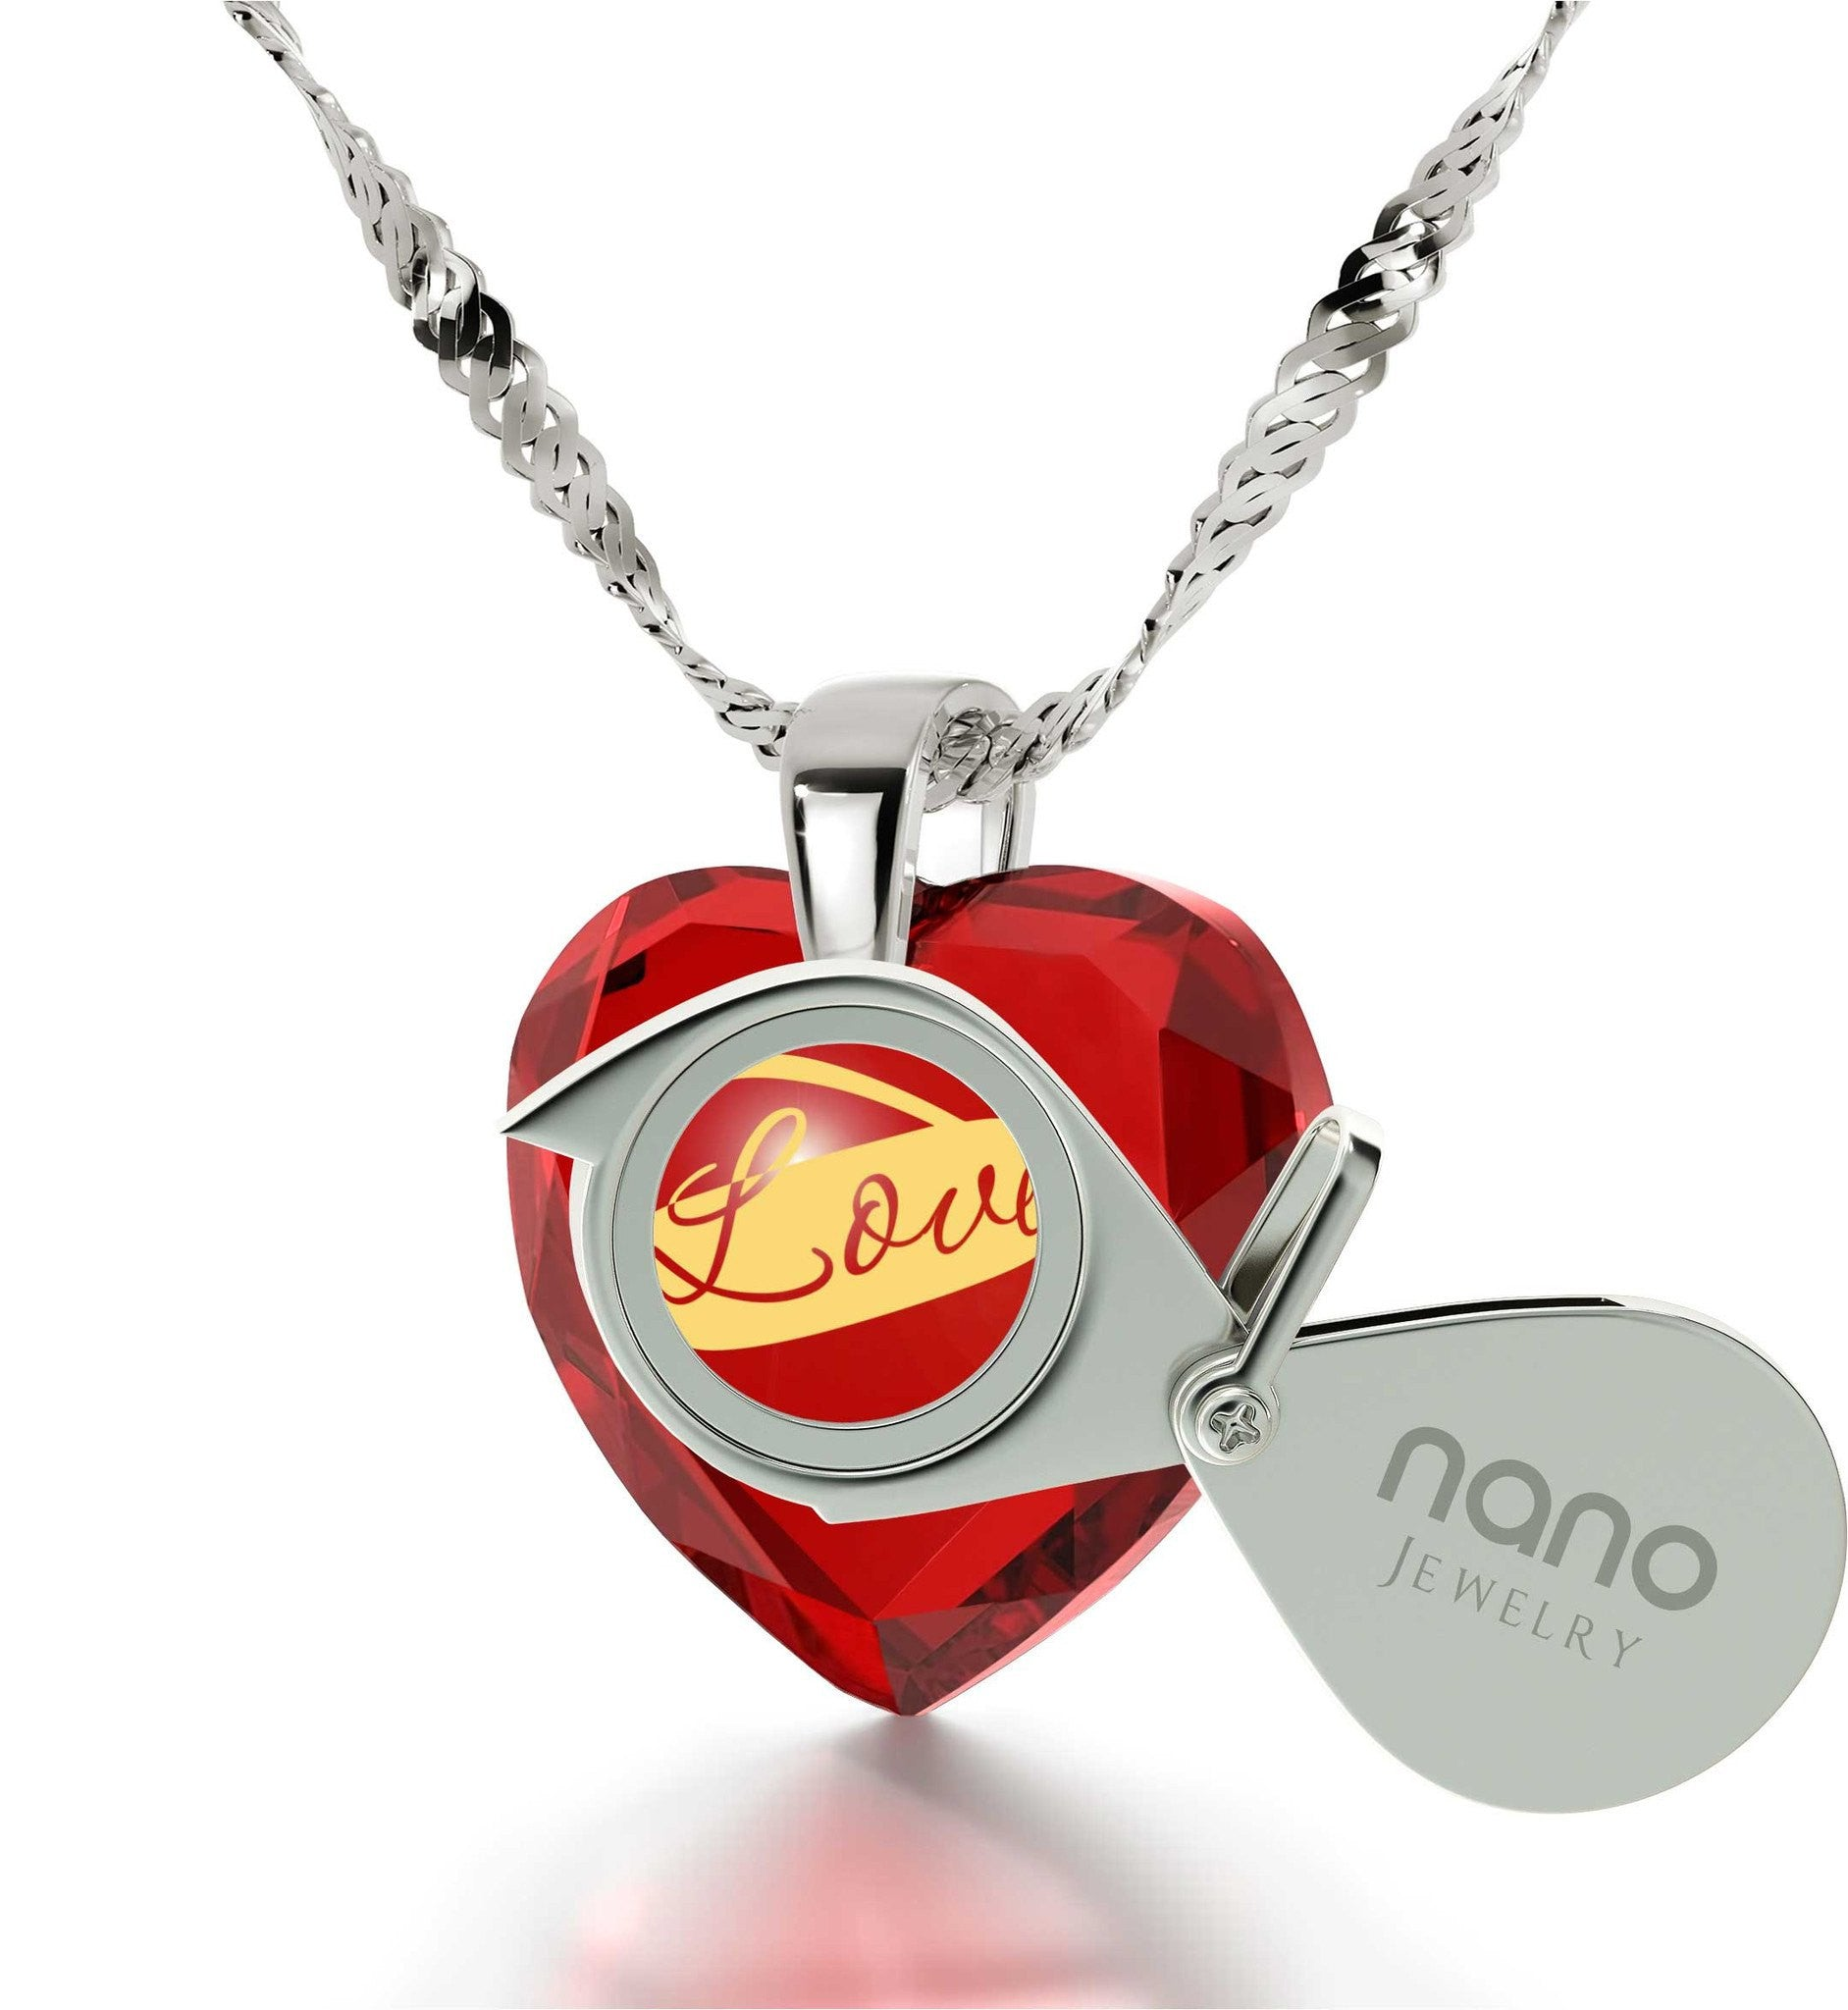 Top Gifts for Wife, 14k White Gold Necklace, Heart CZ Stone, Pure Romance Products, by Nano Jewelry